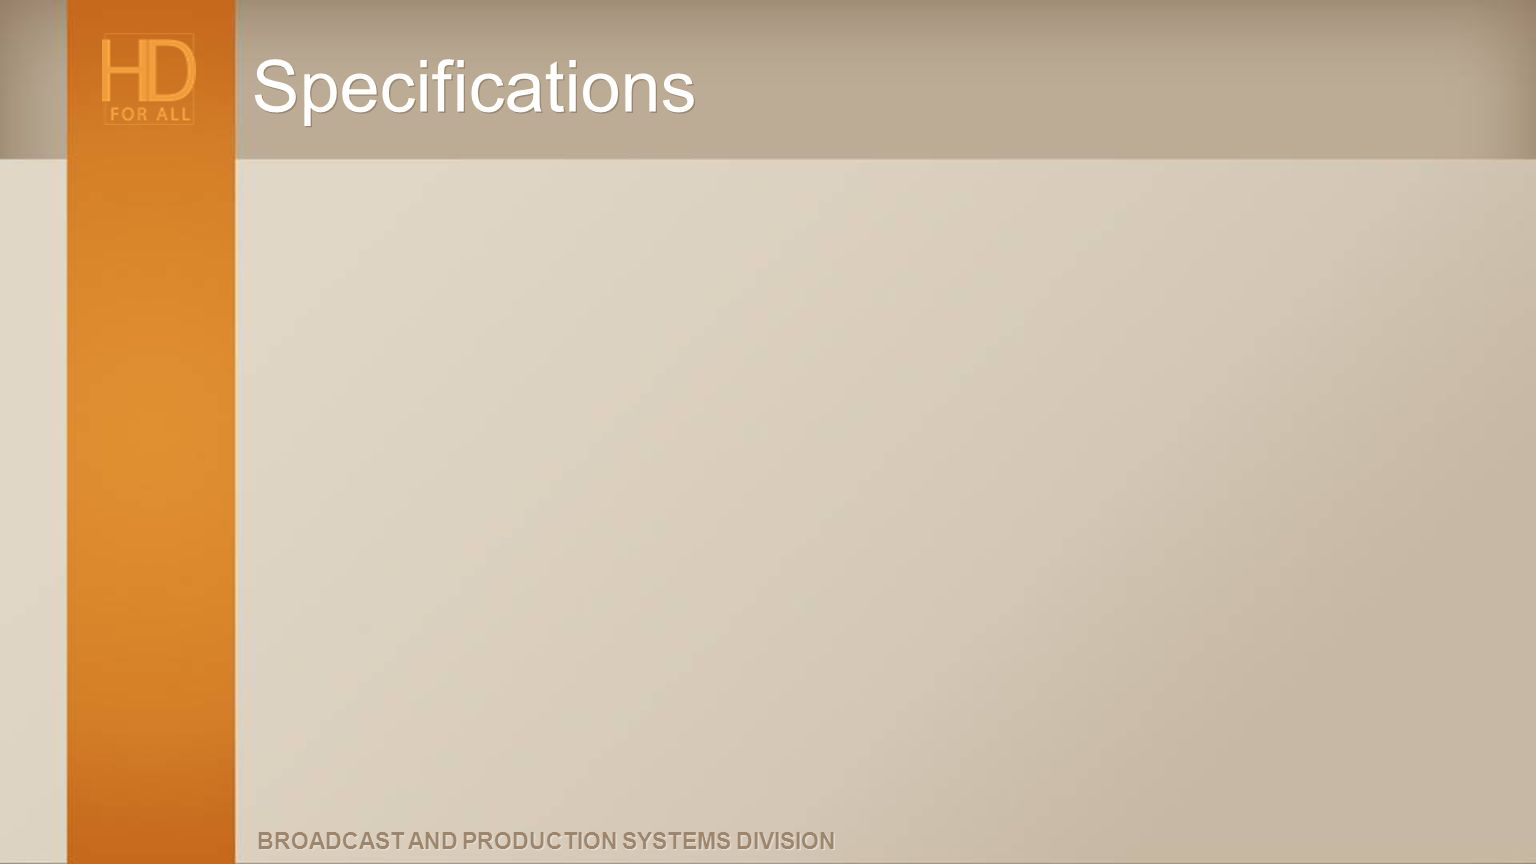 BROADCAST AND PRODUCTION SYSTEMS DIVISION Specifications